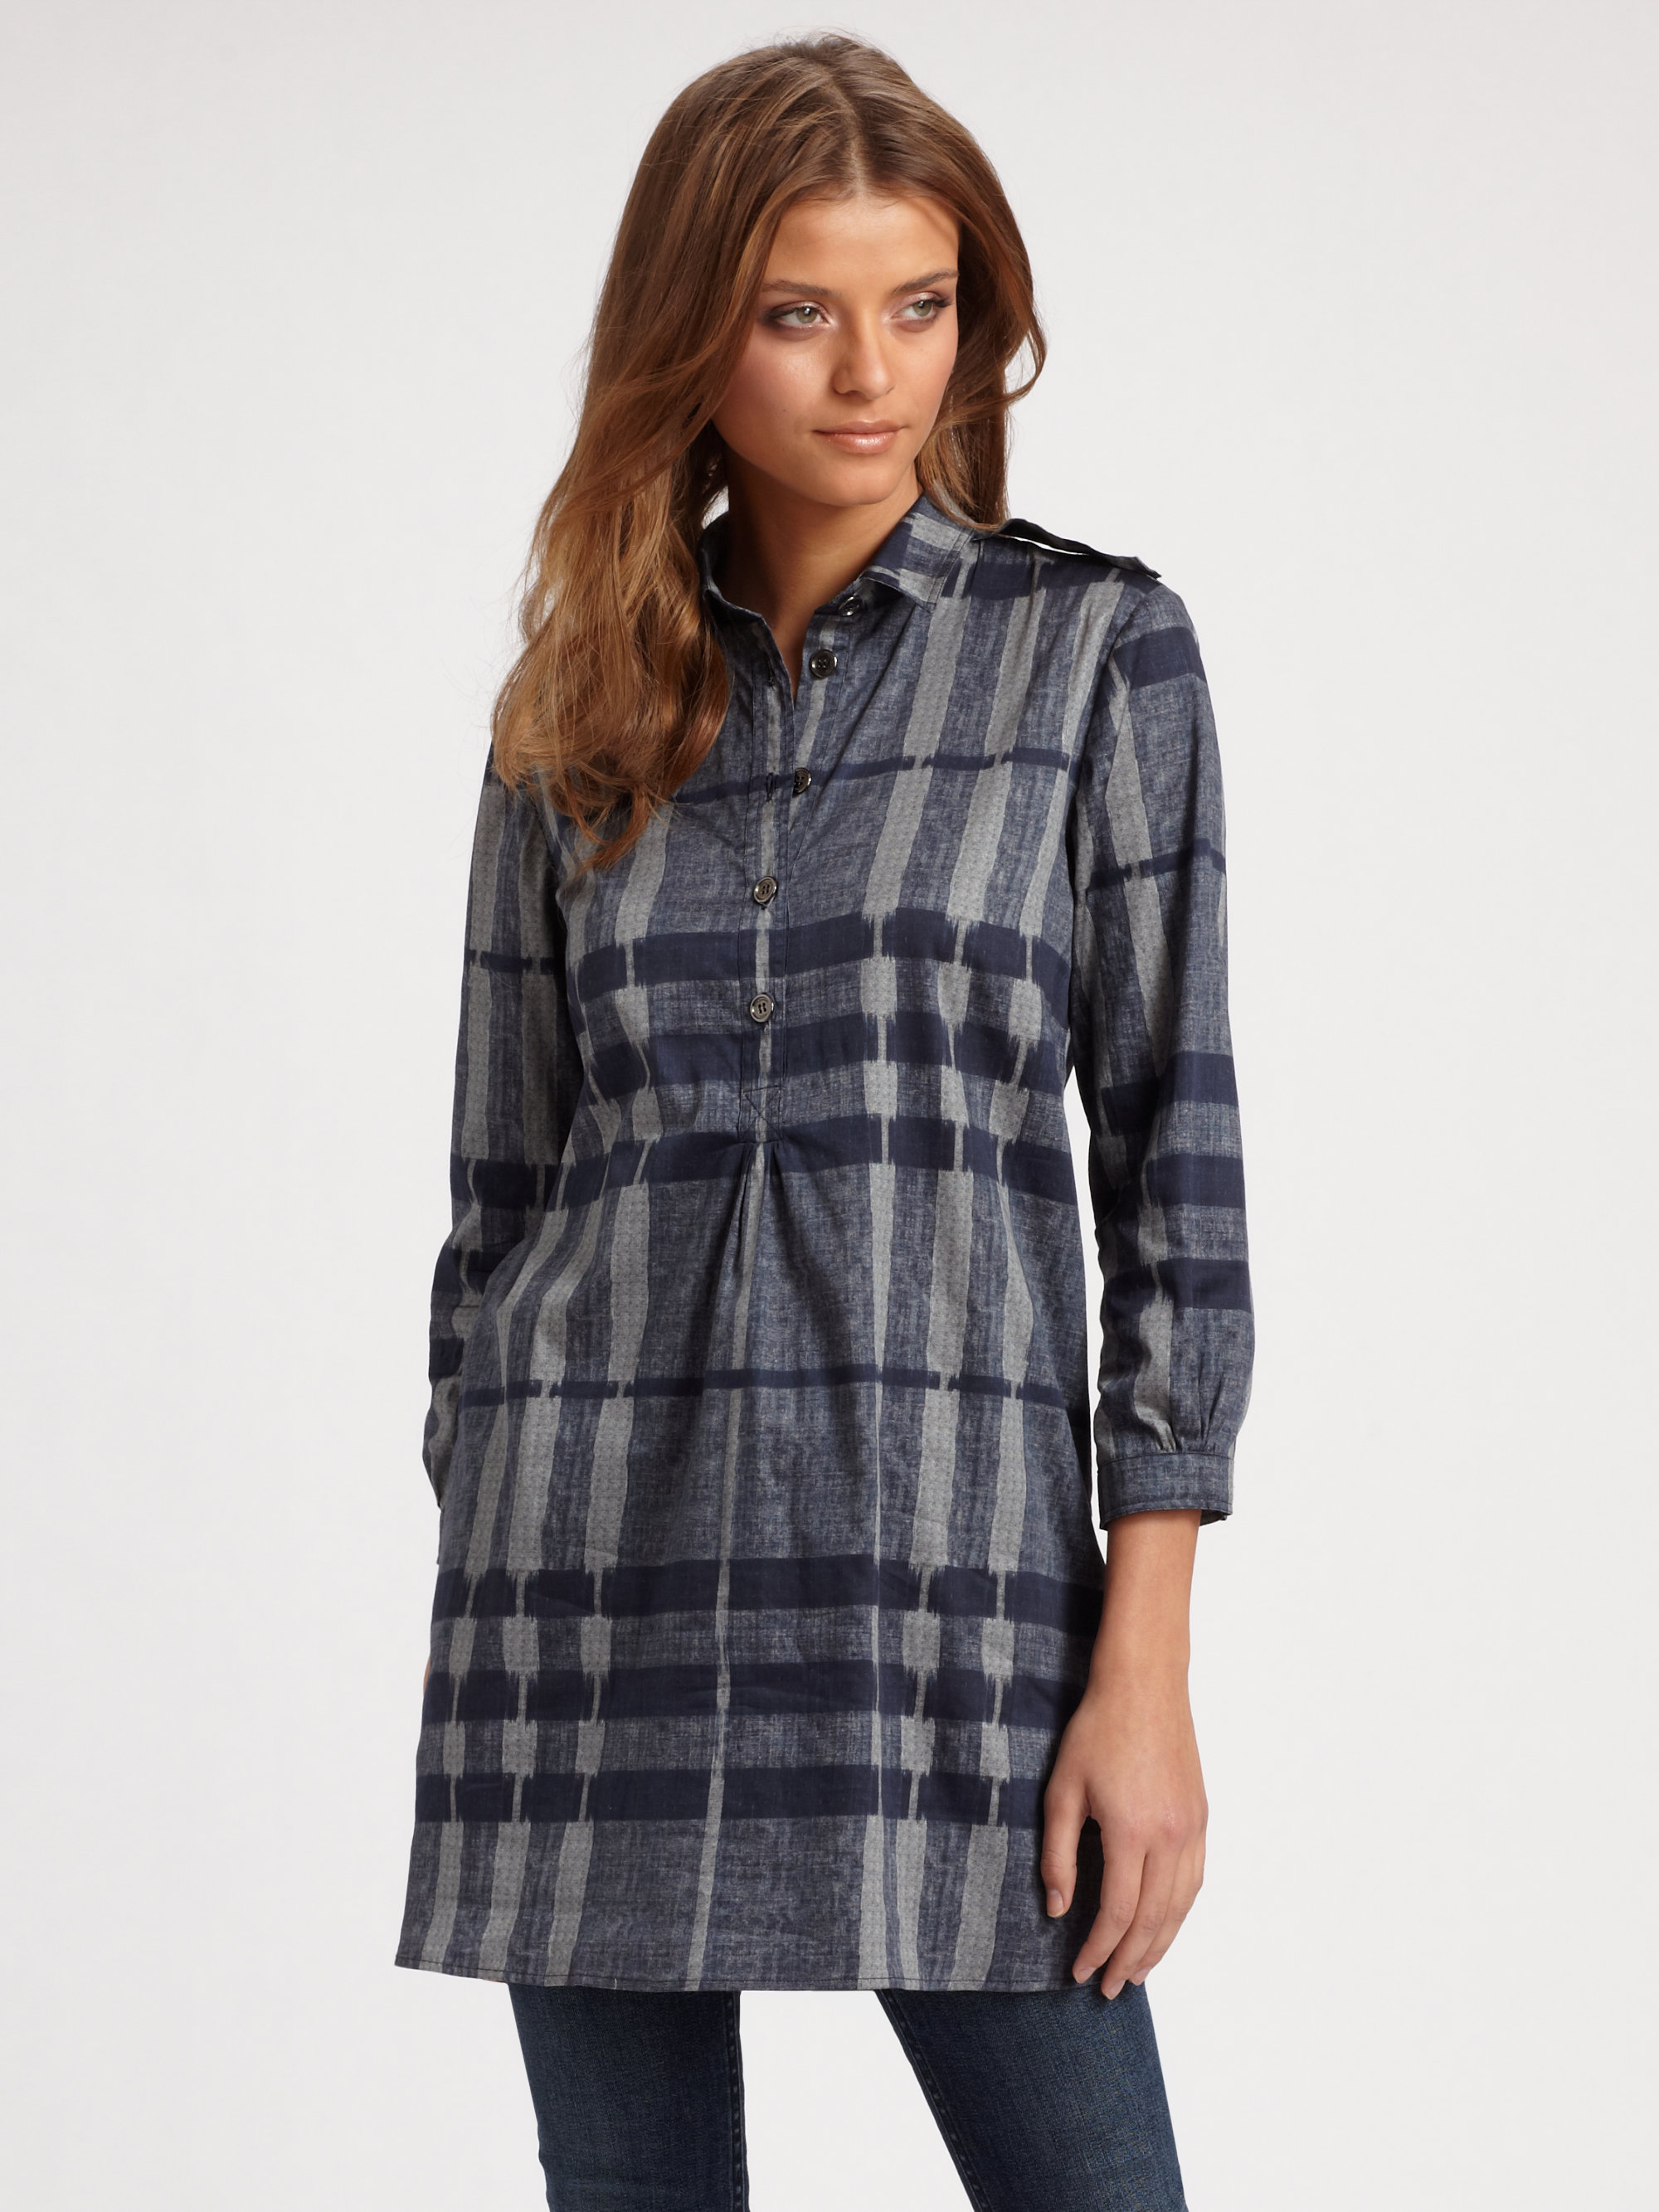 3264a146a62 Burberry Brit Check Tunic Top in Gray - Lyst